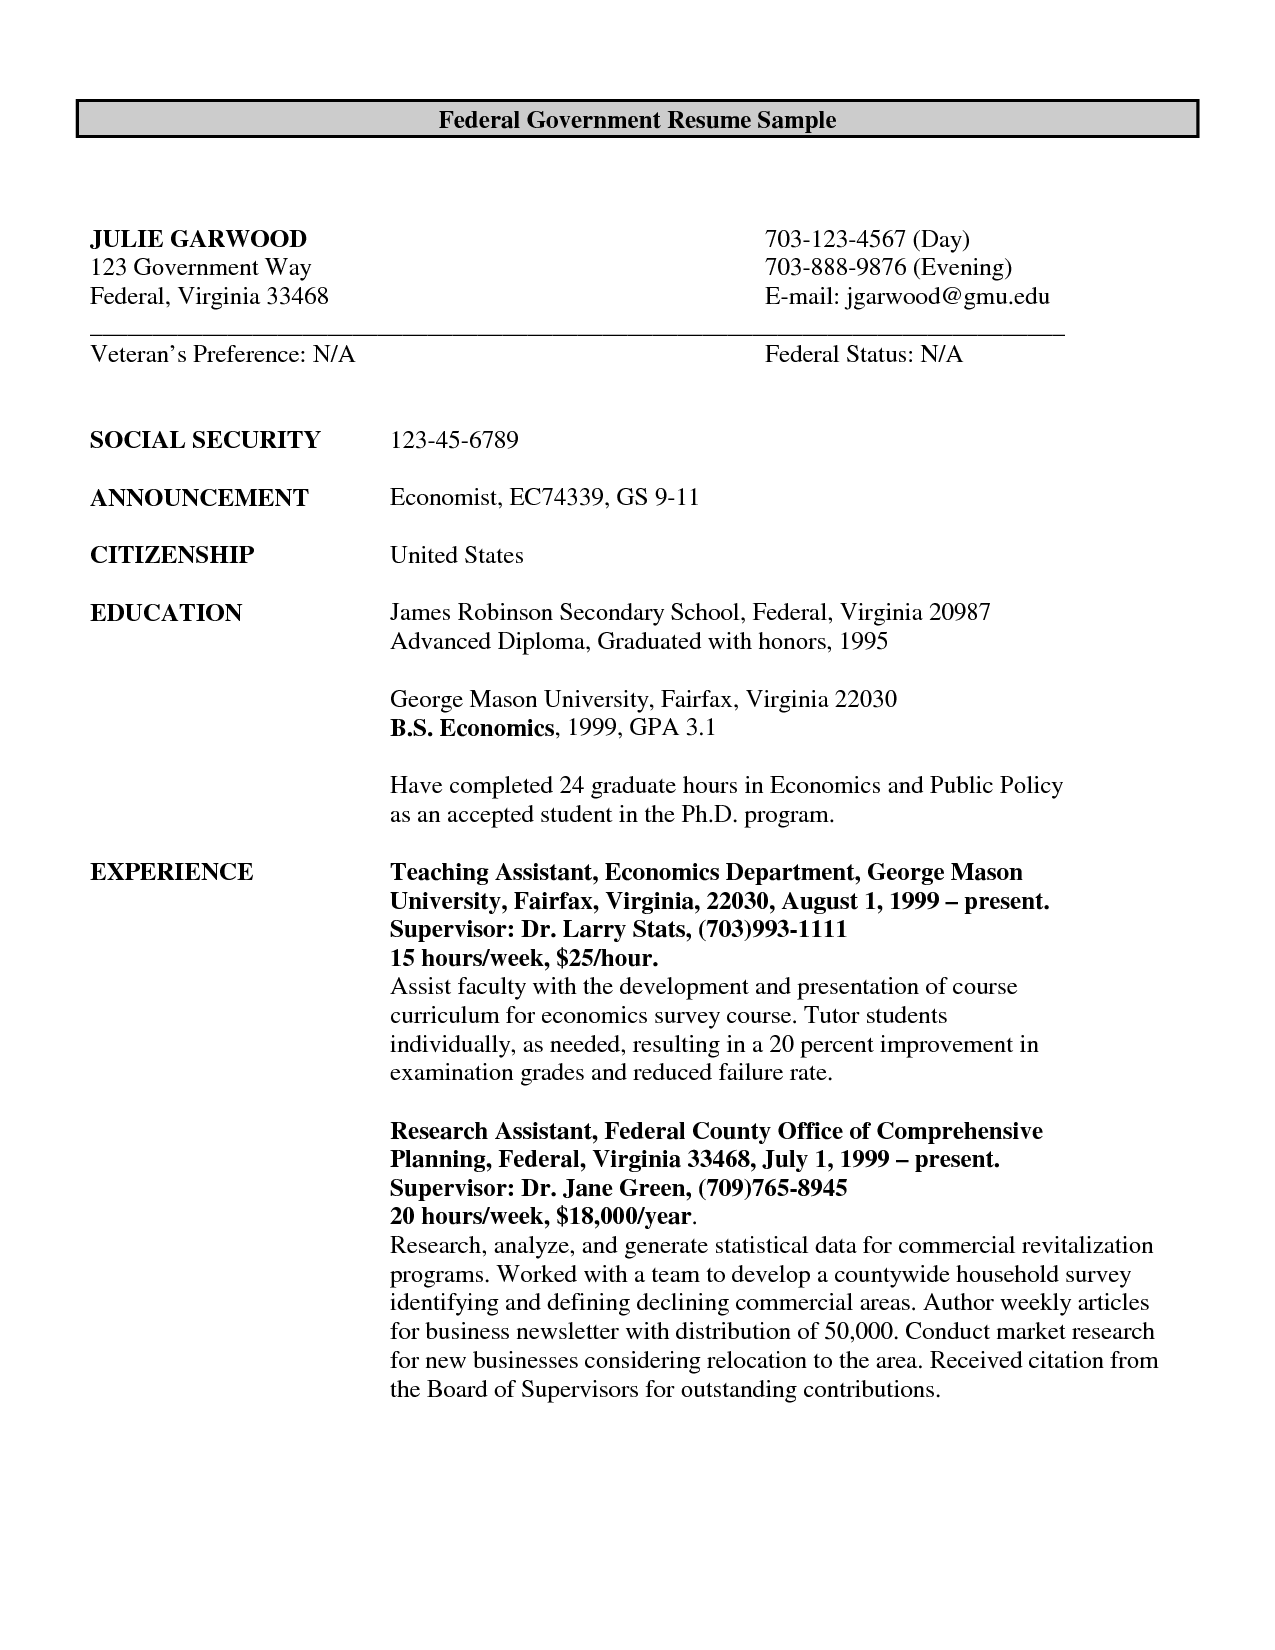 Sample Federal Government Resumes Federal Government Resume Example Http Www